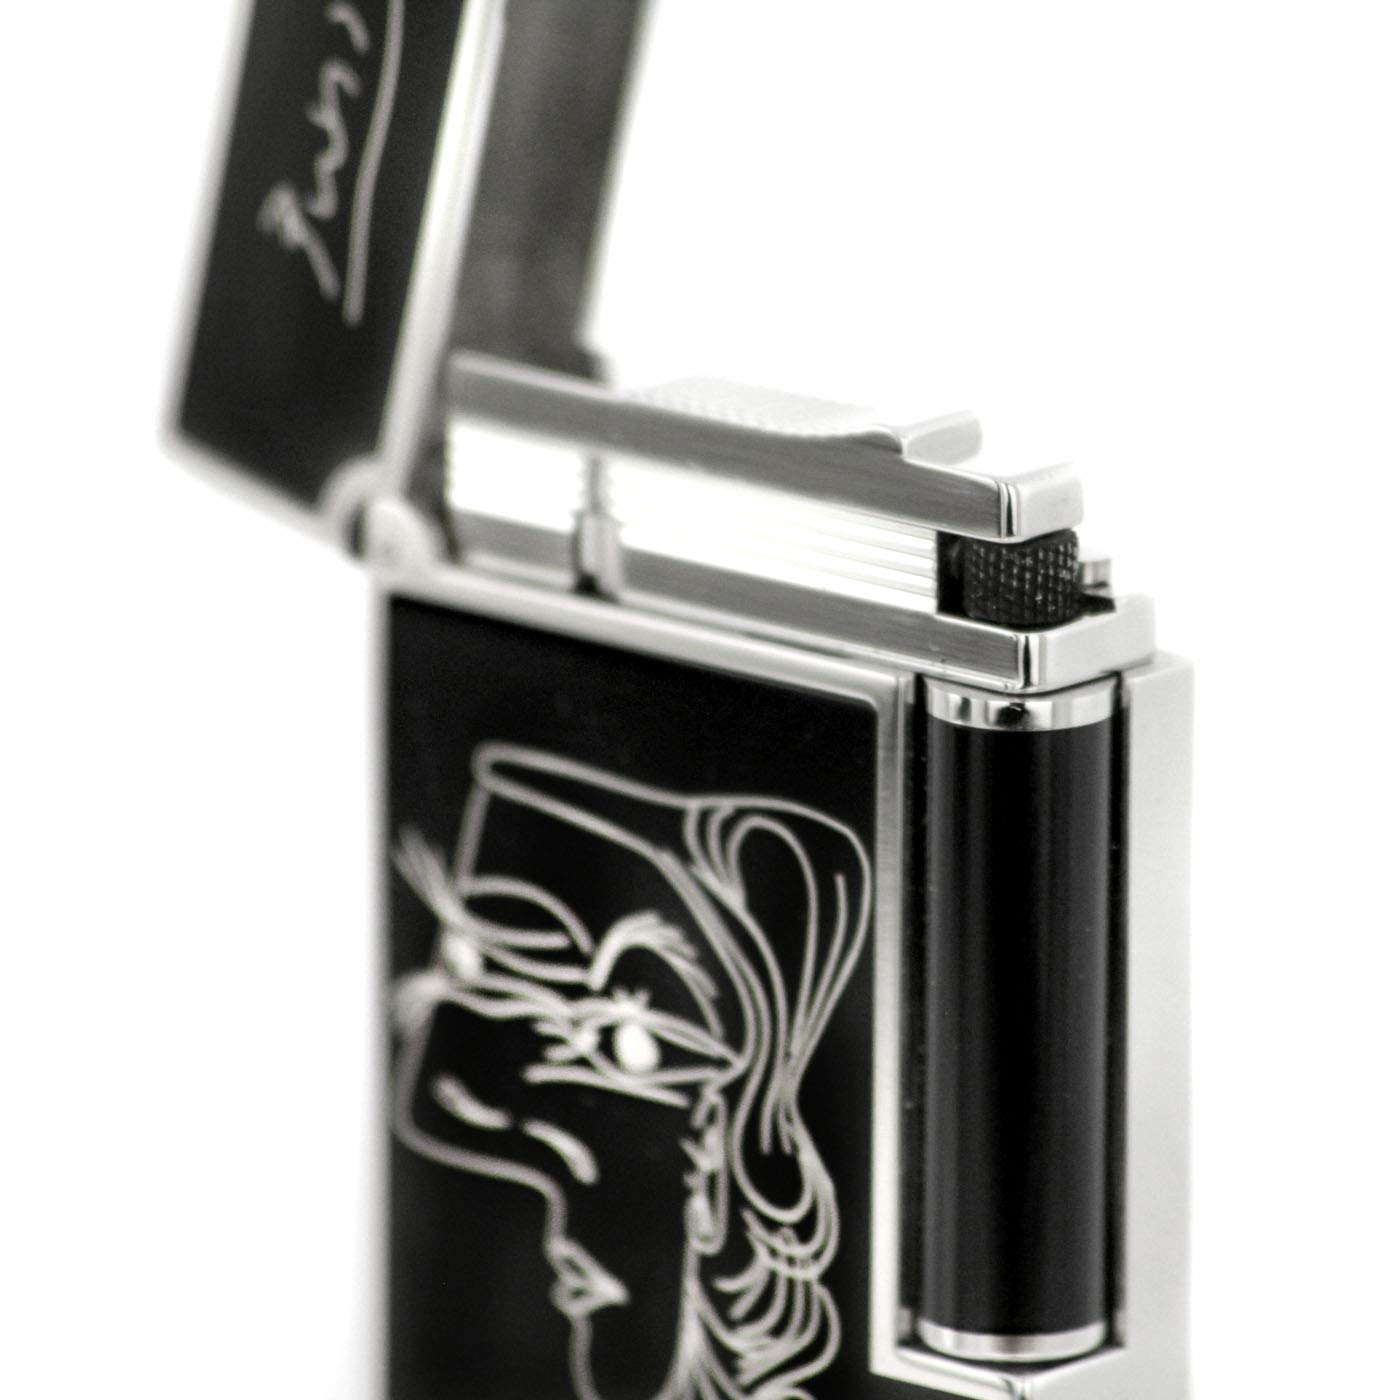 S.T. Dupont Ligne 2 Limited Edition Picasso 2018 Lighter 16105 by S.T. Dupont (Image #4)